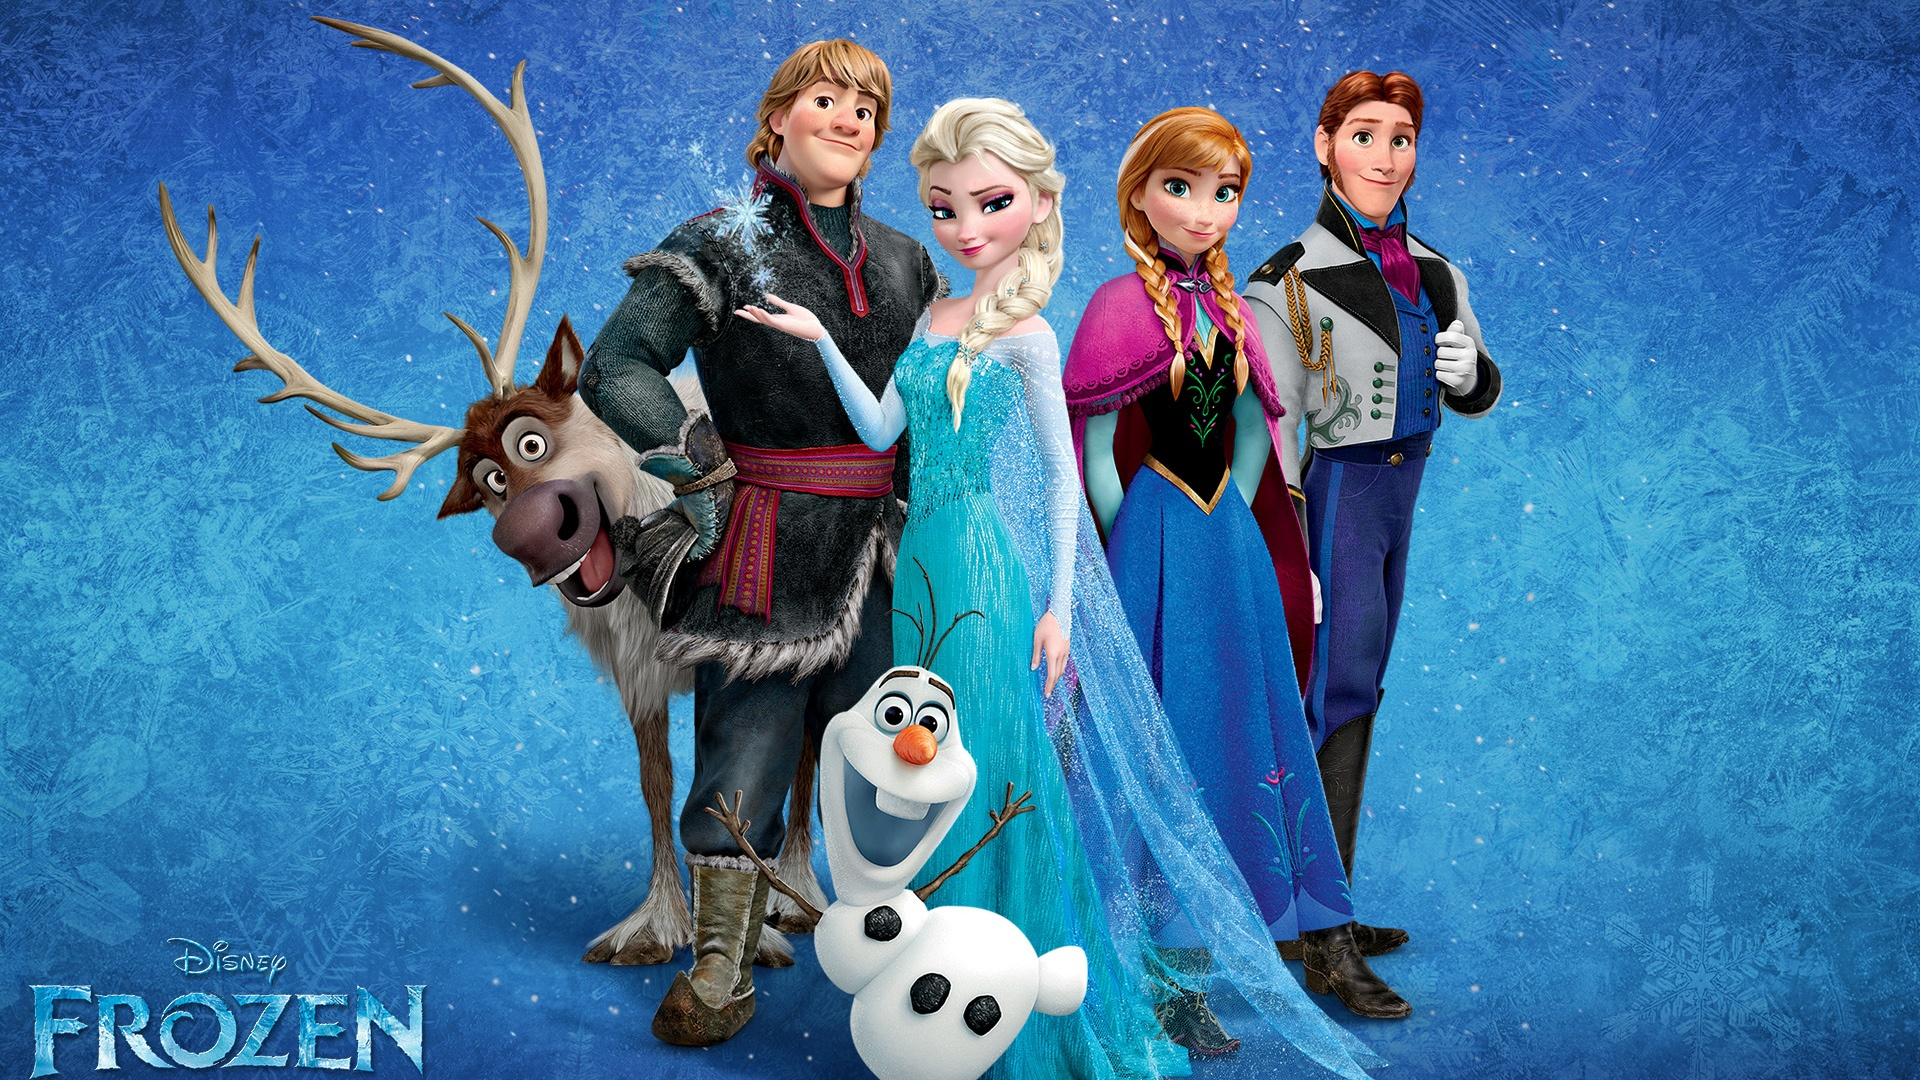 Four Movie Clips From The Upcoming Disney Film Frozen